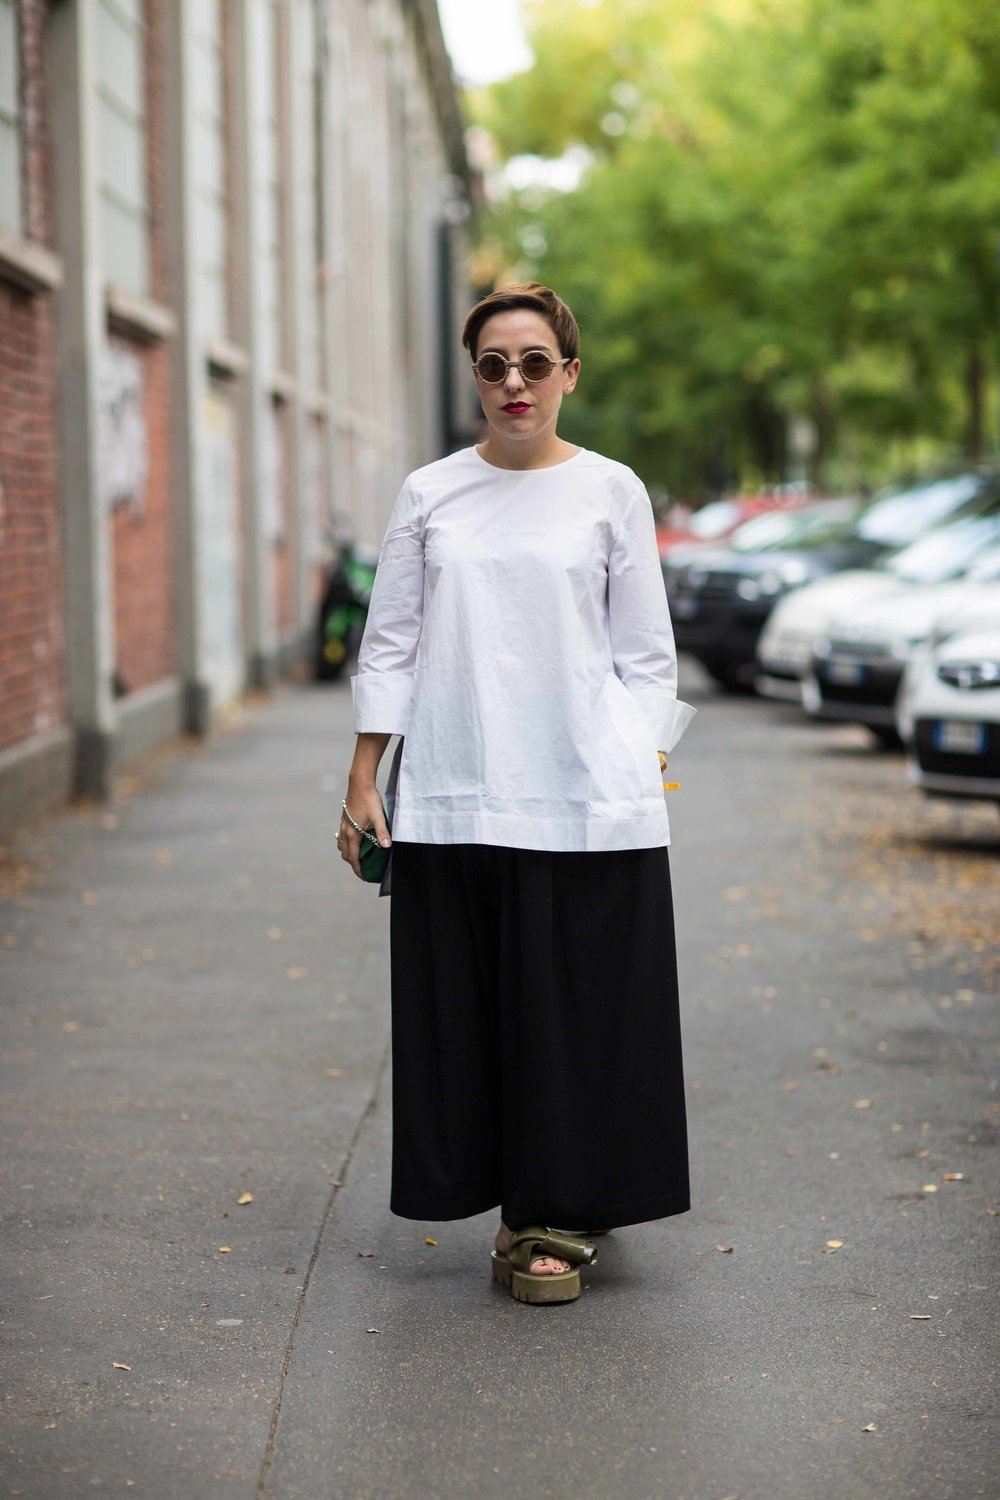 street-style-fashion-blog-innsbruck-milan-caterina